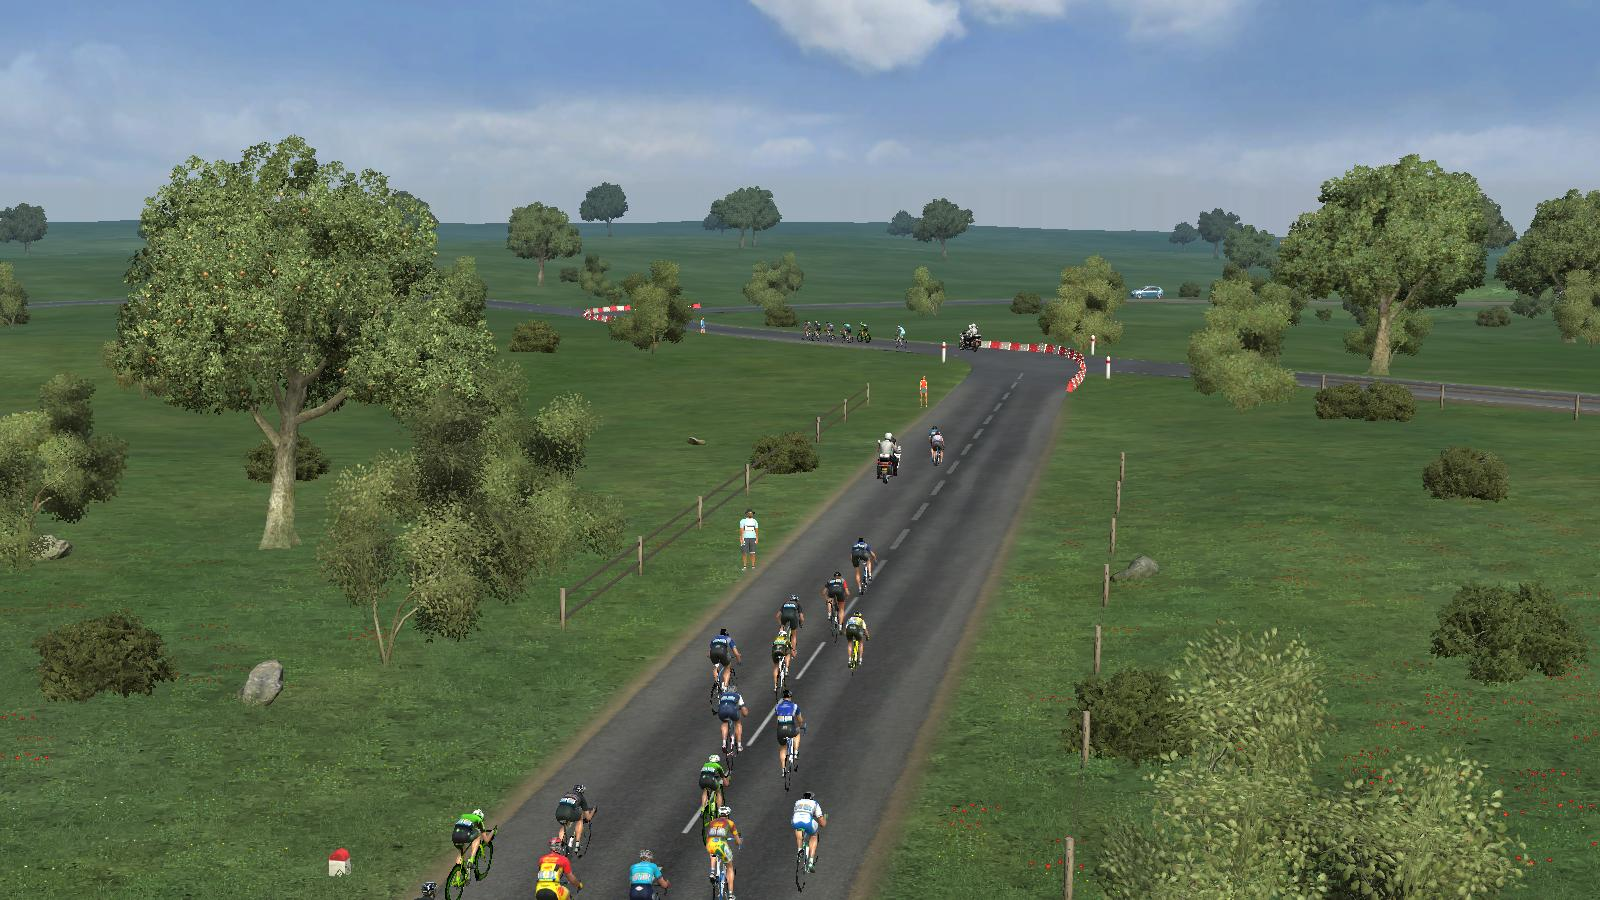 pcmdaily.com/images/mg/2019/Races/PTHC/Rheden/23.jpg